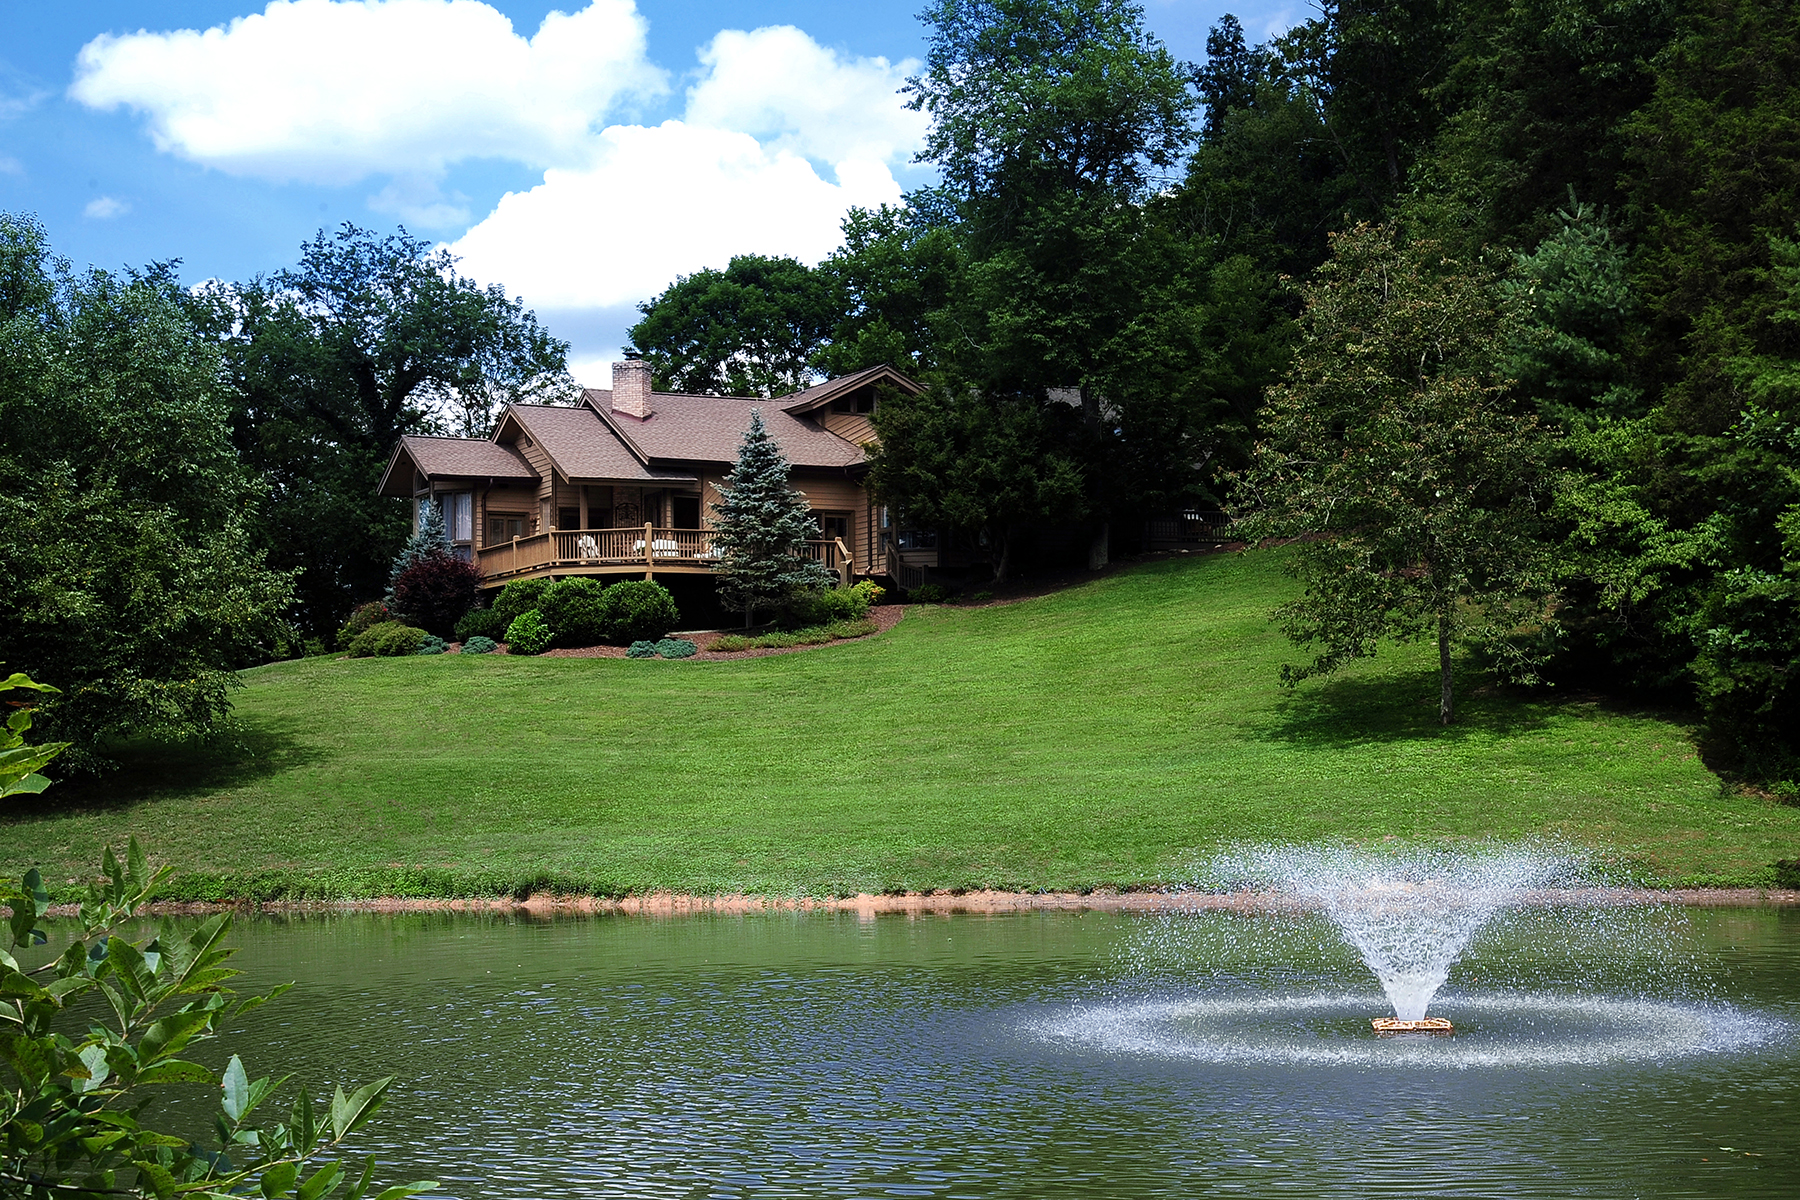 Single Family Home for Sale at 409 ACRE ESTATE WITH 4 HOUSES IN BRISTOL, TN 485 Gentry Ln, Bristol, Tennessee 37620 United States